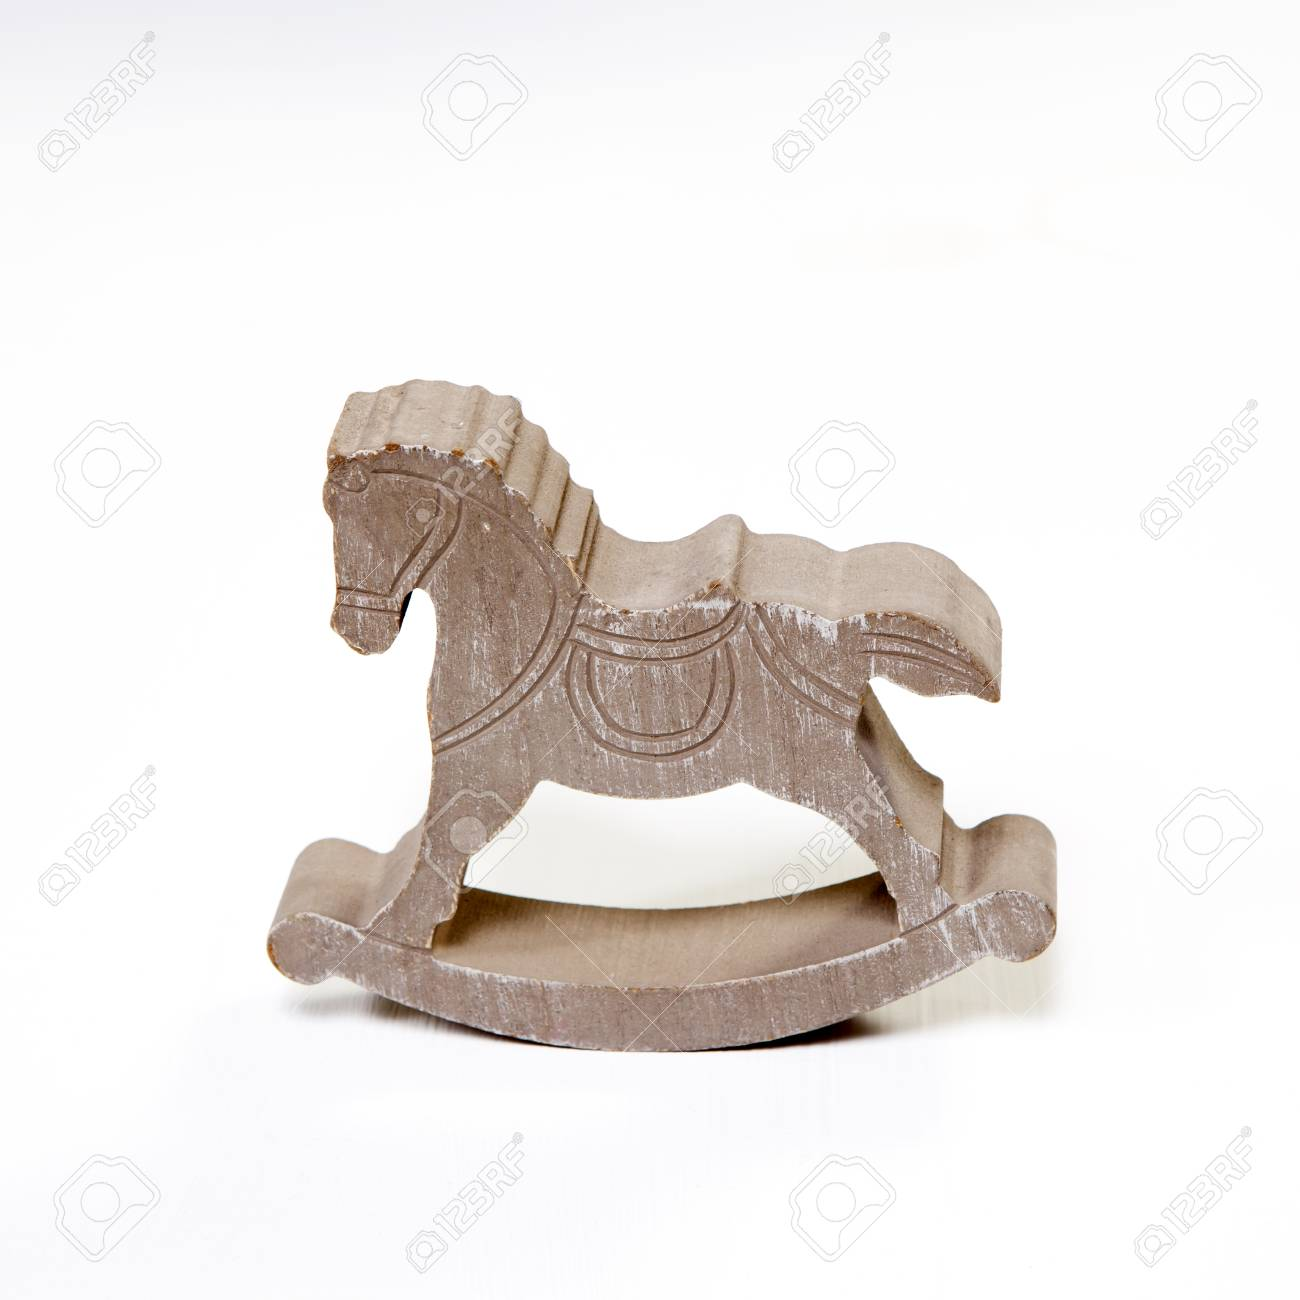 Classic Homemade Wooden Rocking Horse On White Background Stock Photo Picture And Royalty Free Image Image 93700200